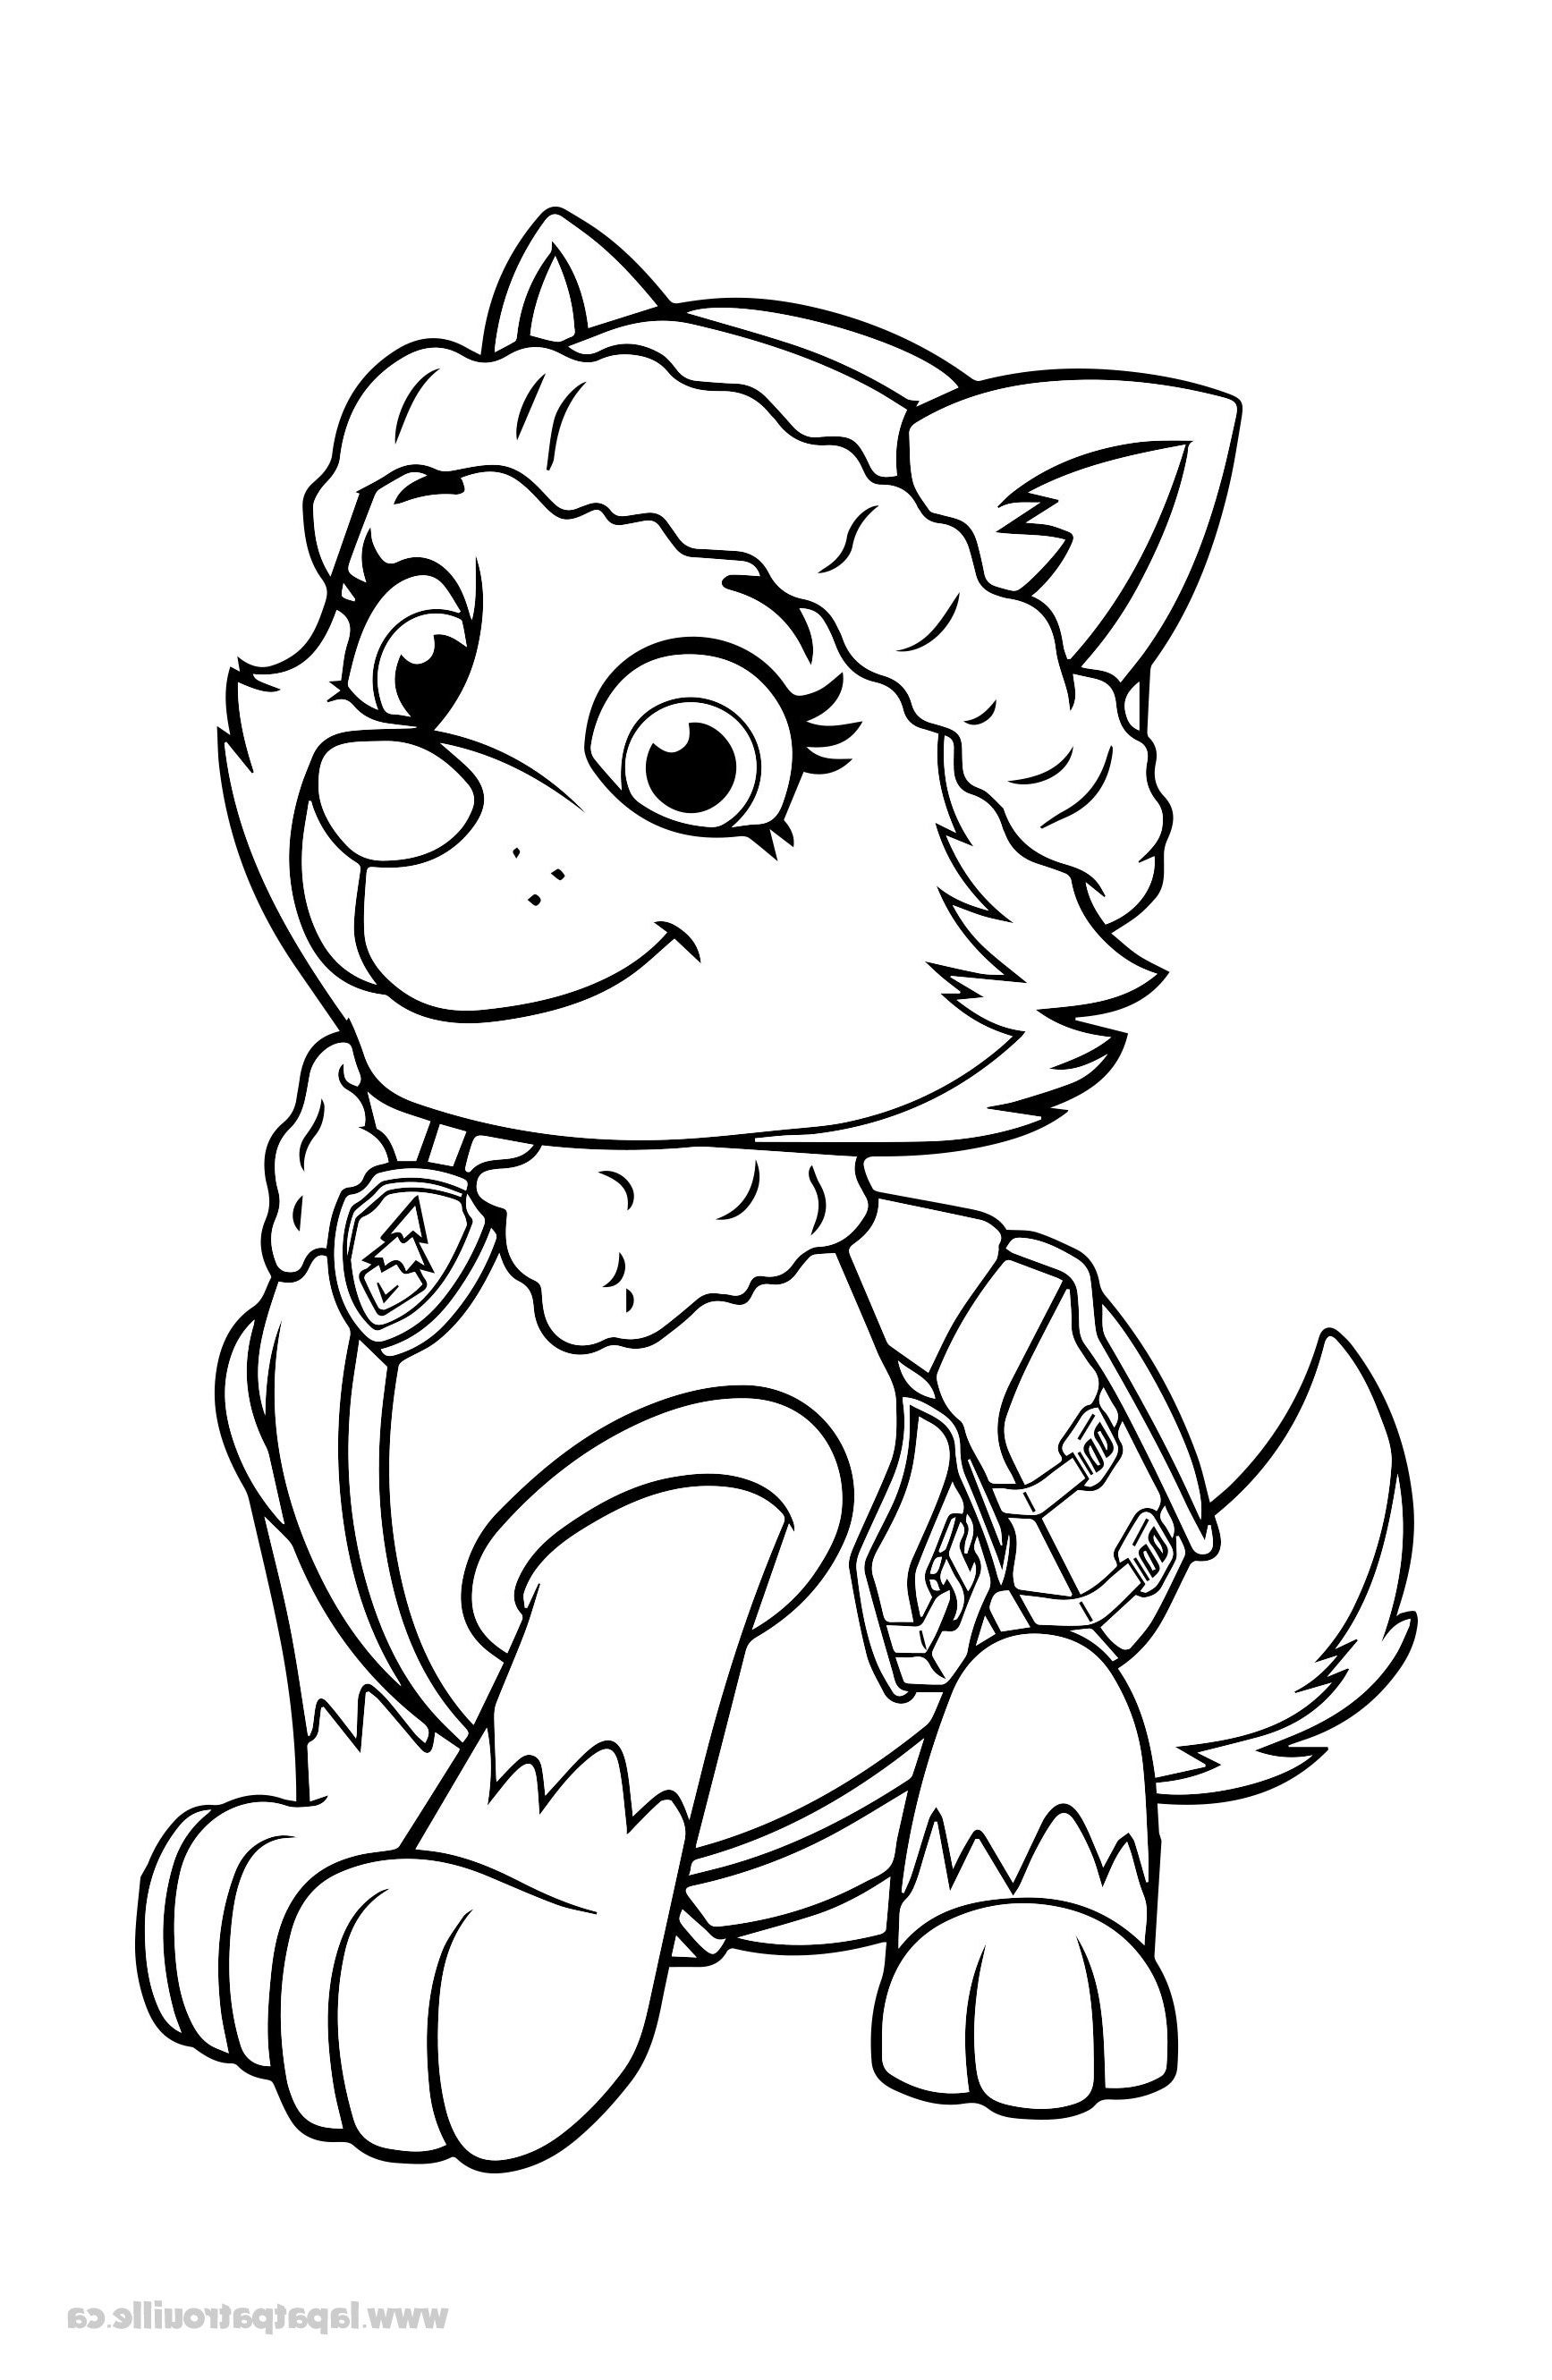 11 Cher Coloriage Pat Patrouille Tracker Pictures En 2020 Coloriage Pat Patrouille Dessin Pat Patrouille Coloriage Paw Patrol